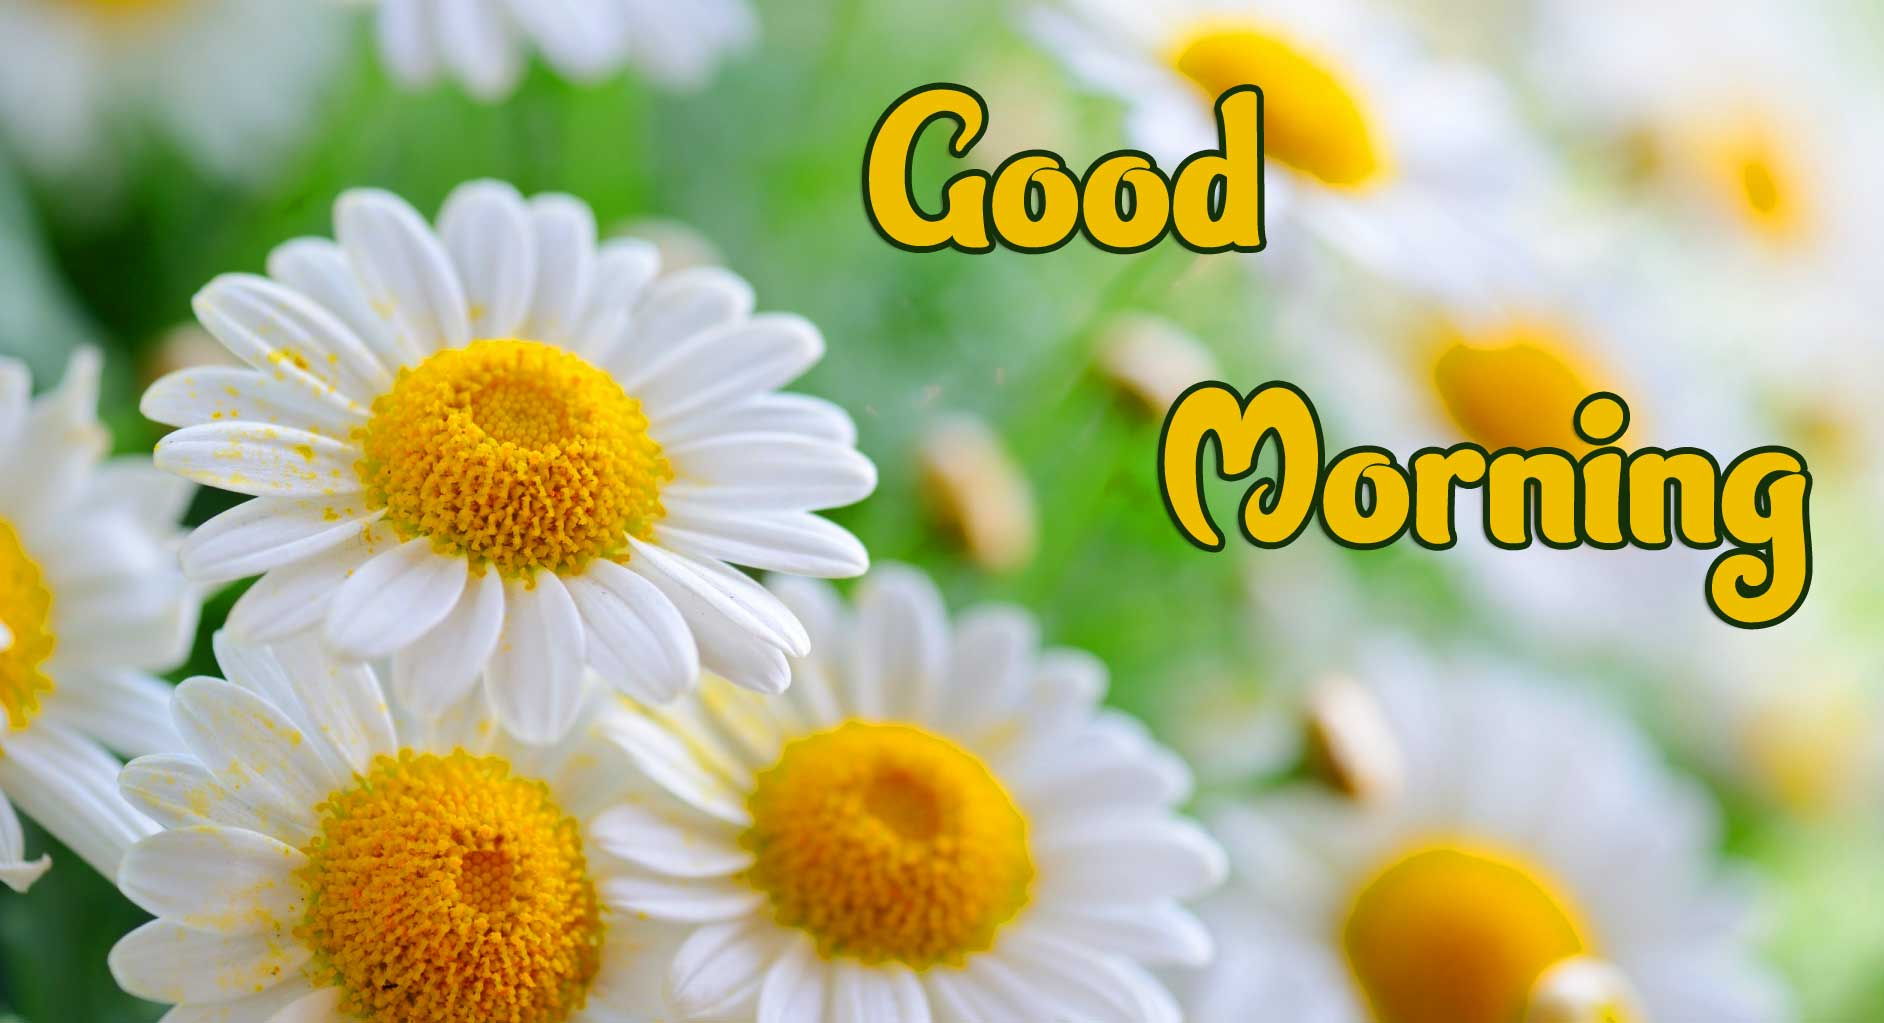 Good Morning 4k Ultra Images Wallpaper Photo for Facebook